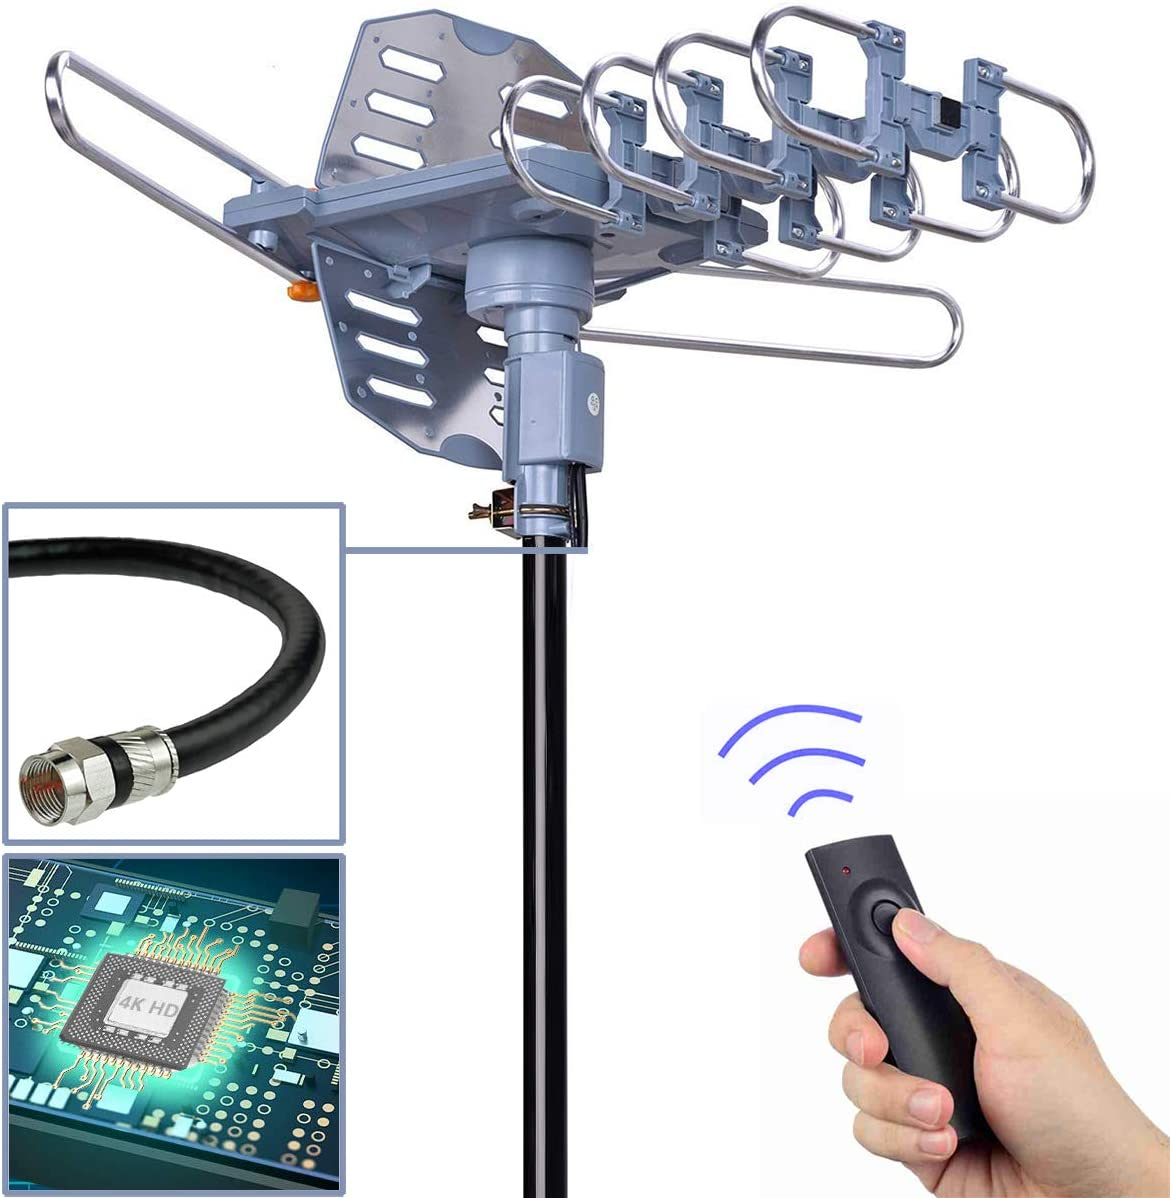 PBD Digital Outdoor TV Antenna, 150 Mile Motorized 360 Degree Rotation Support 2 TVs, Mounting Pole,